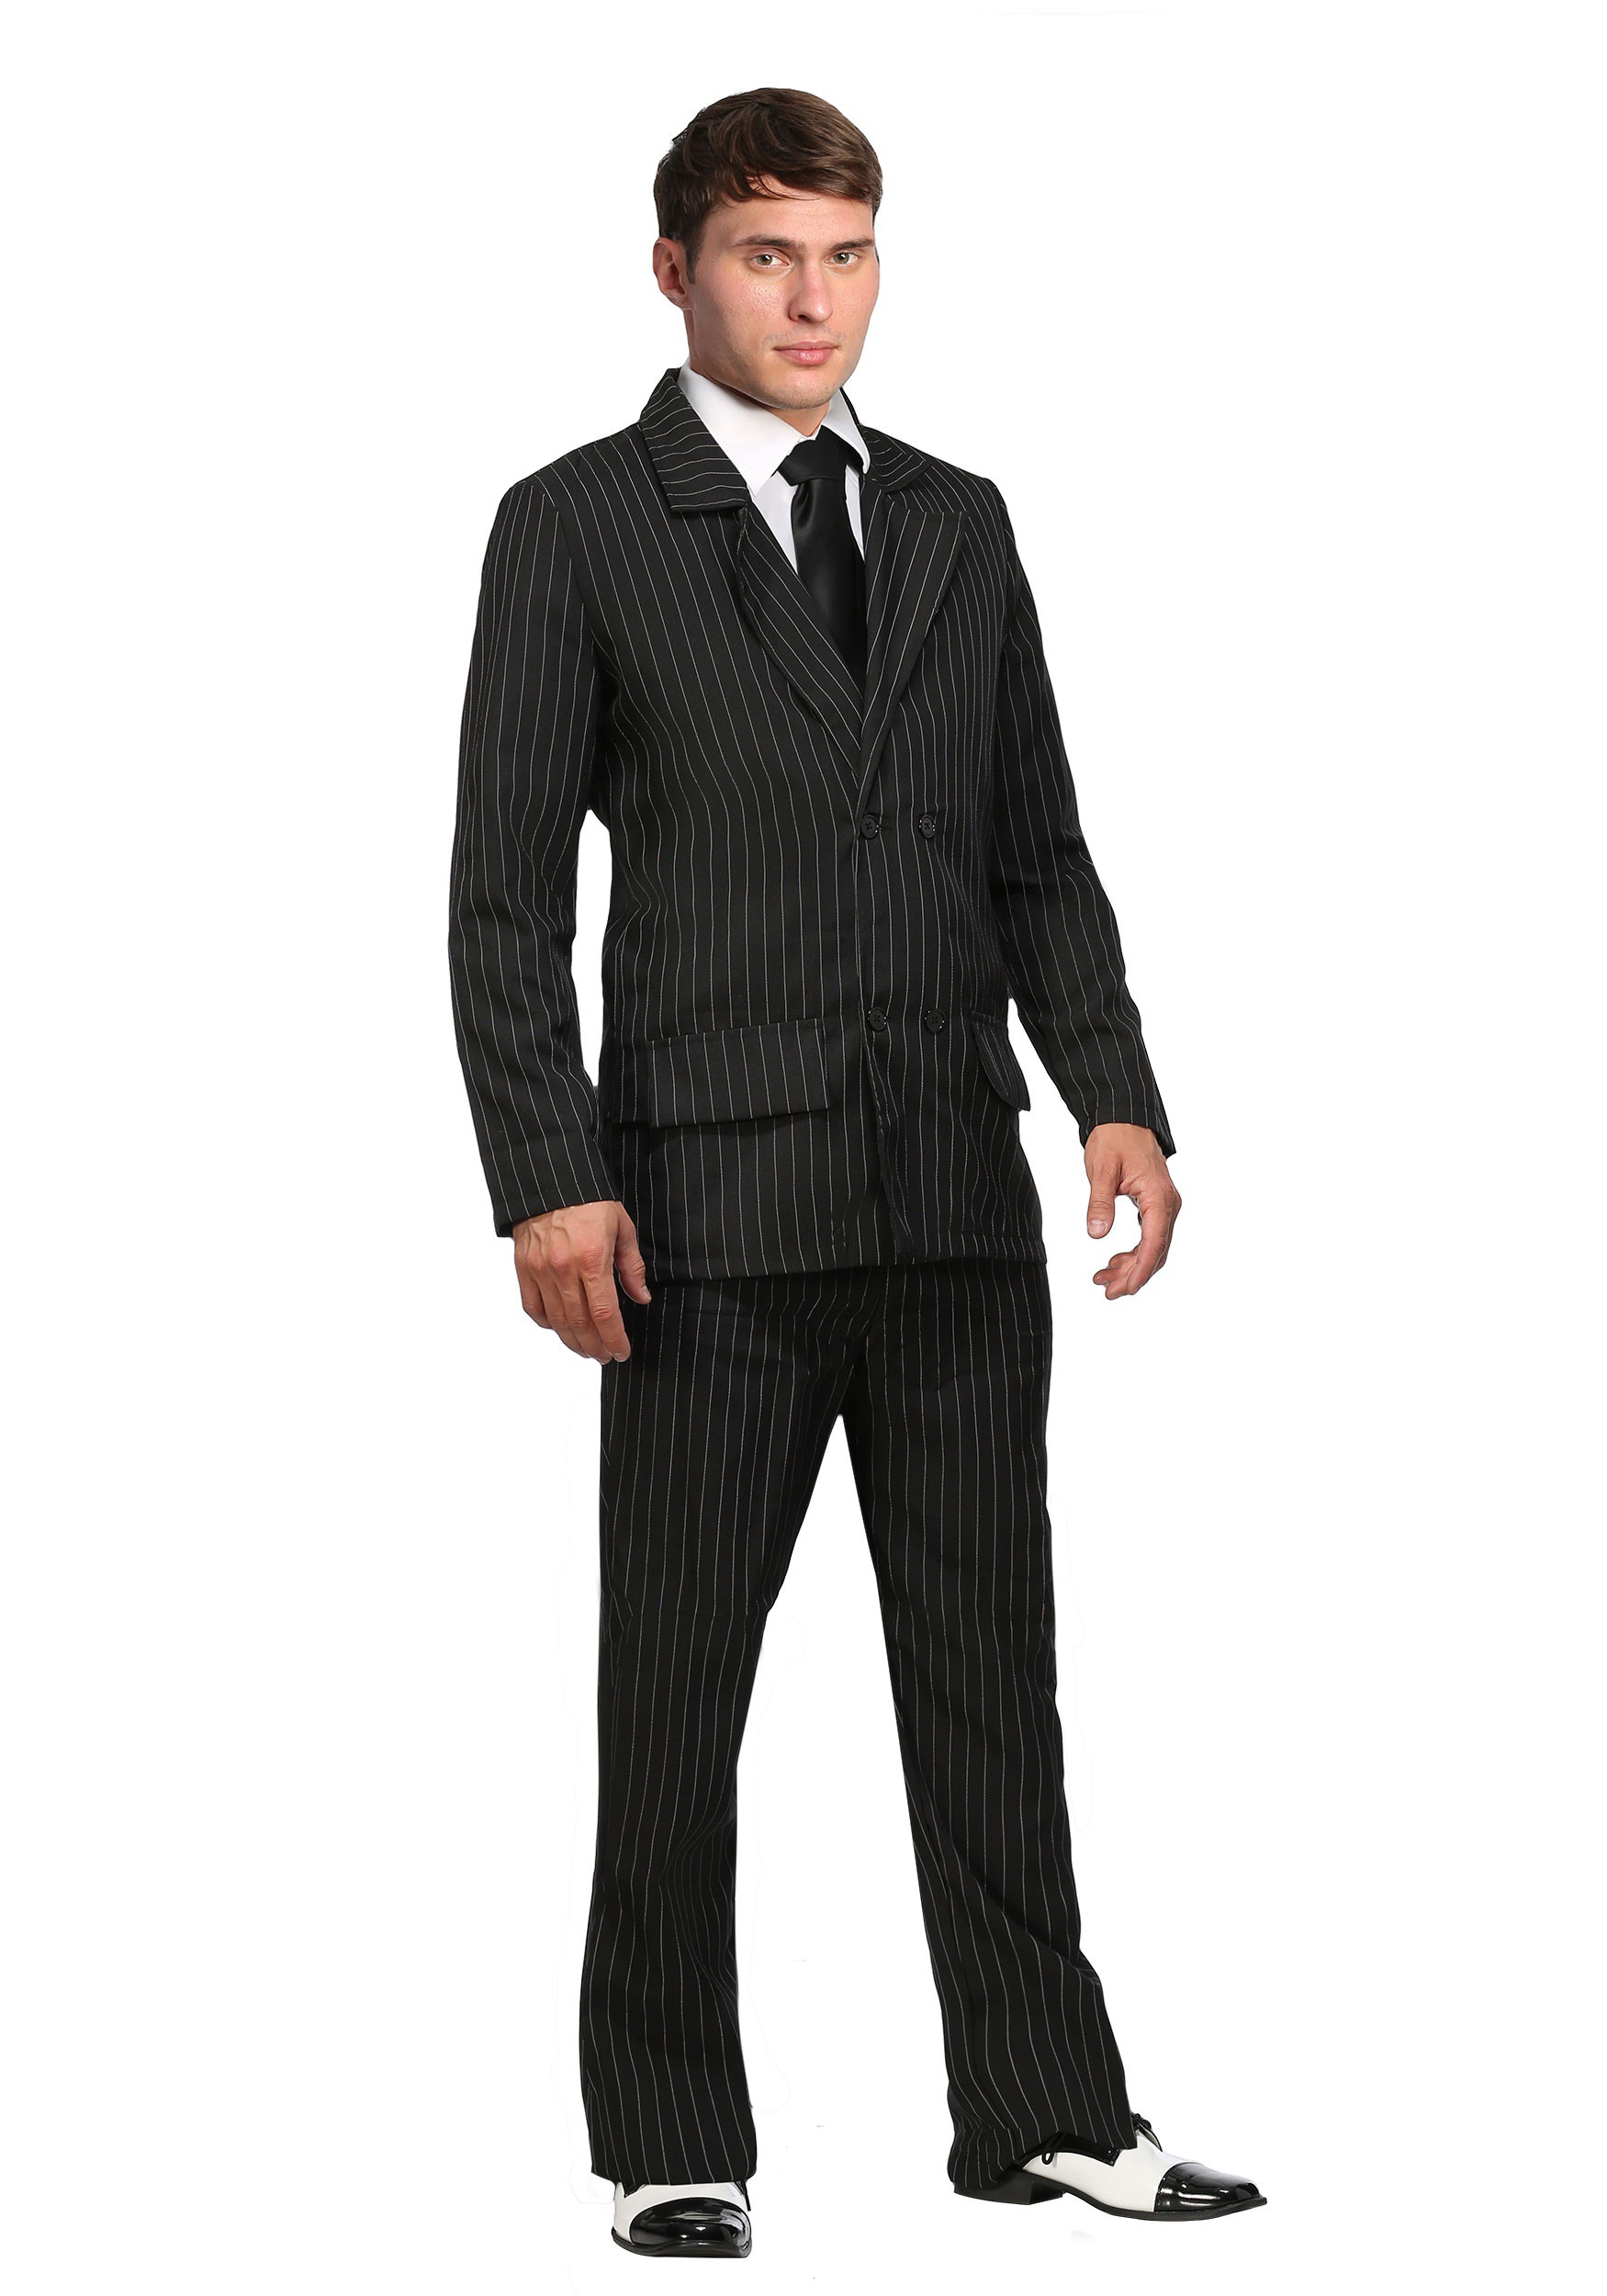 Deluxe Gangster Plus Size Costume for Men | Mobster Costume